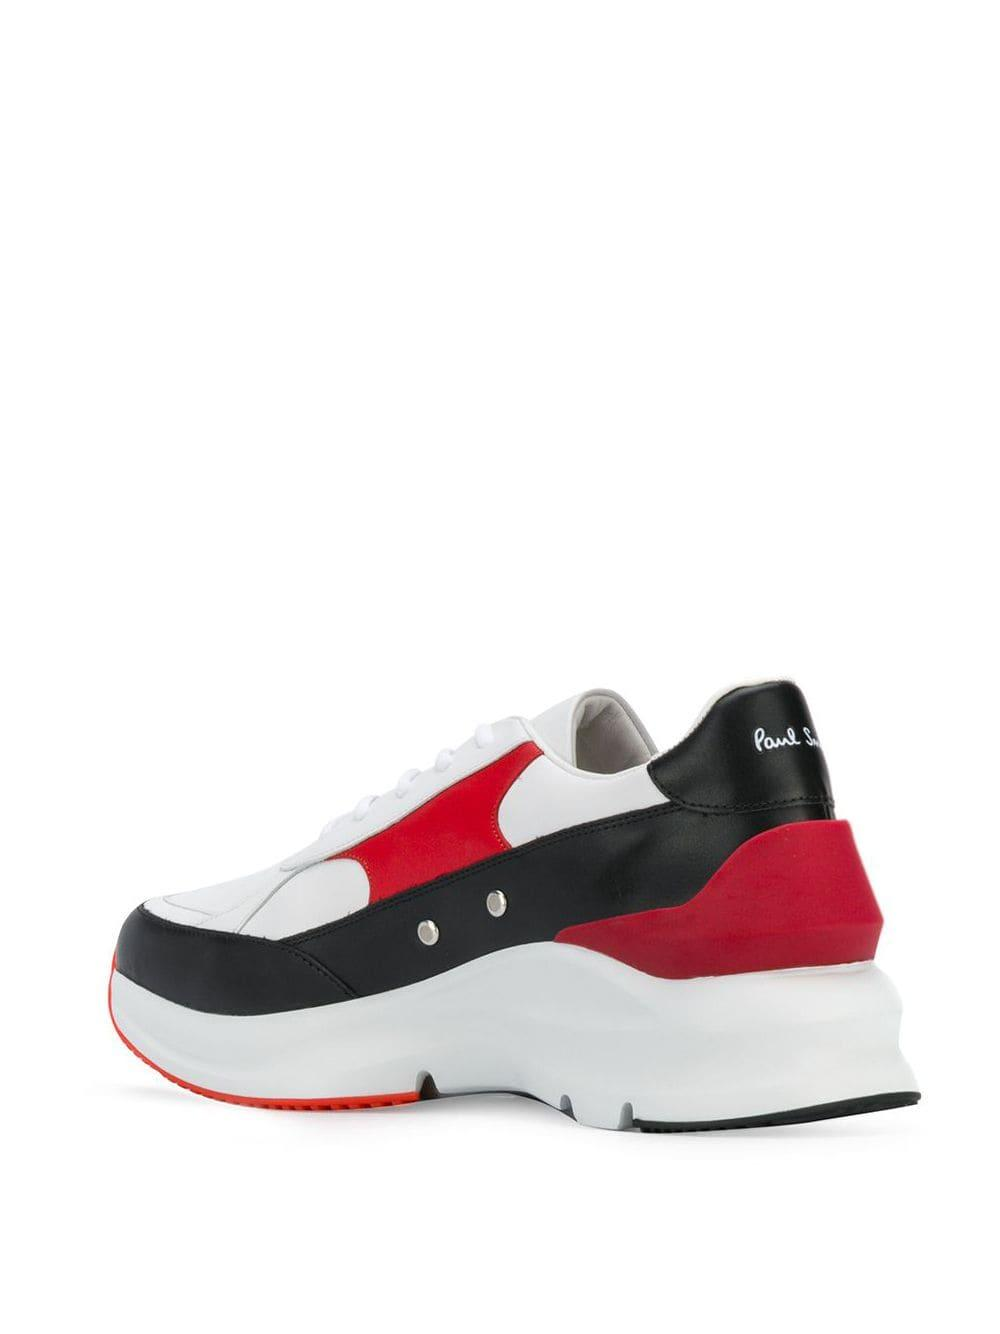 Paul Smith Low-top Sneakers in het Wit voor heren